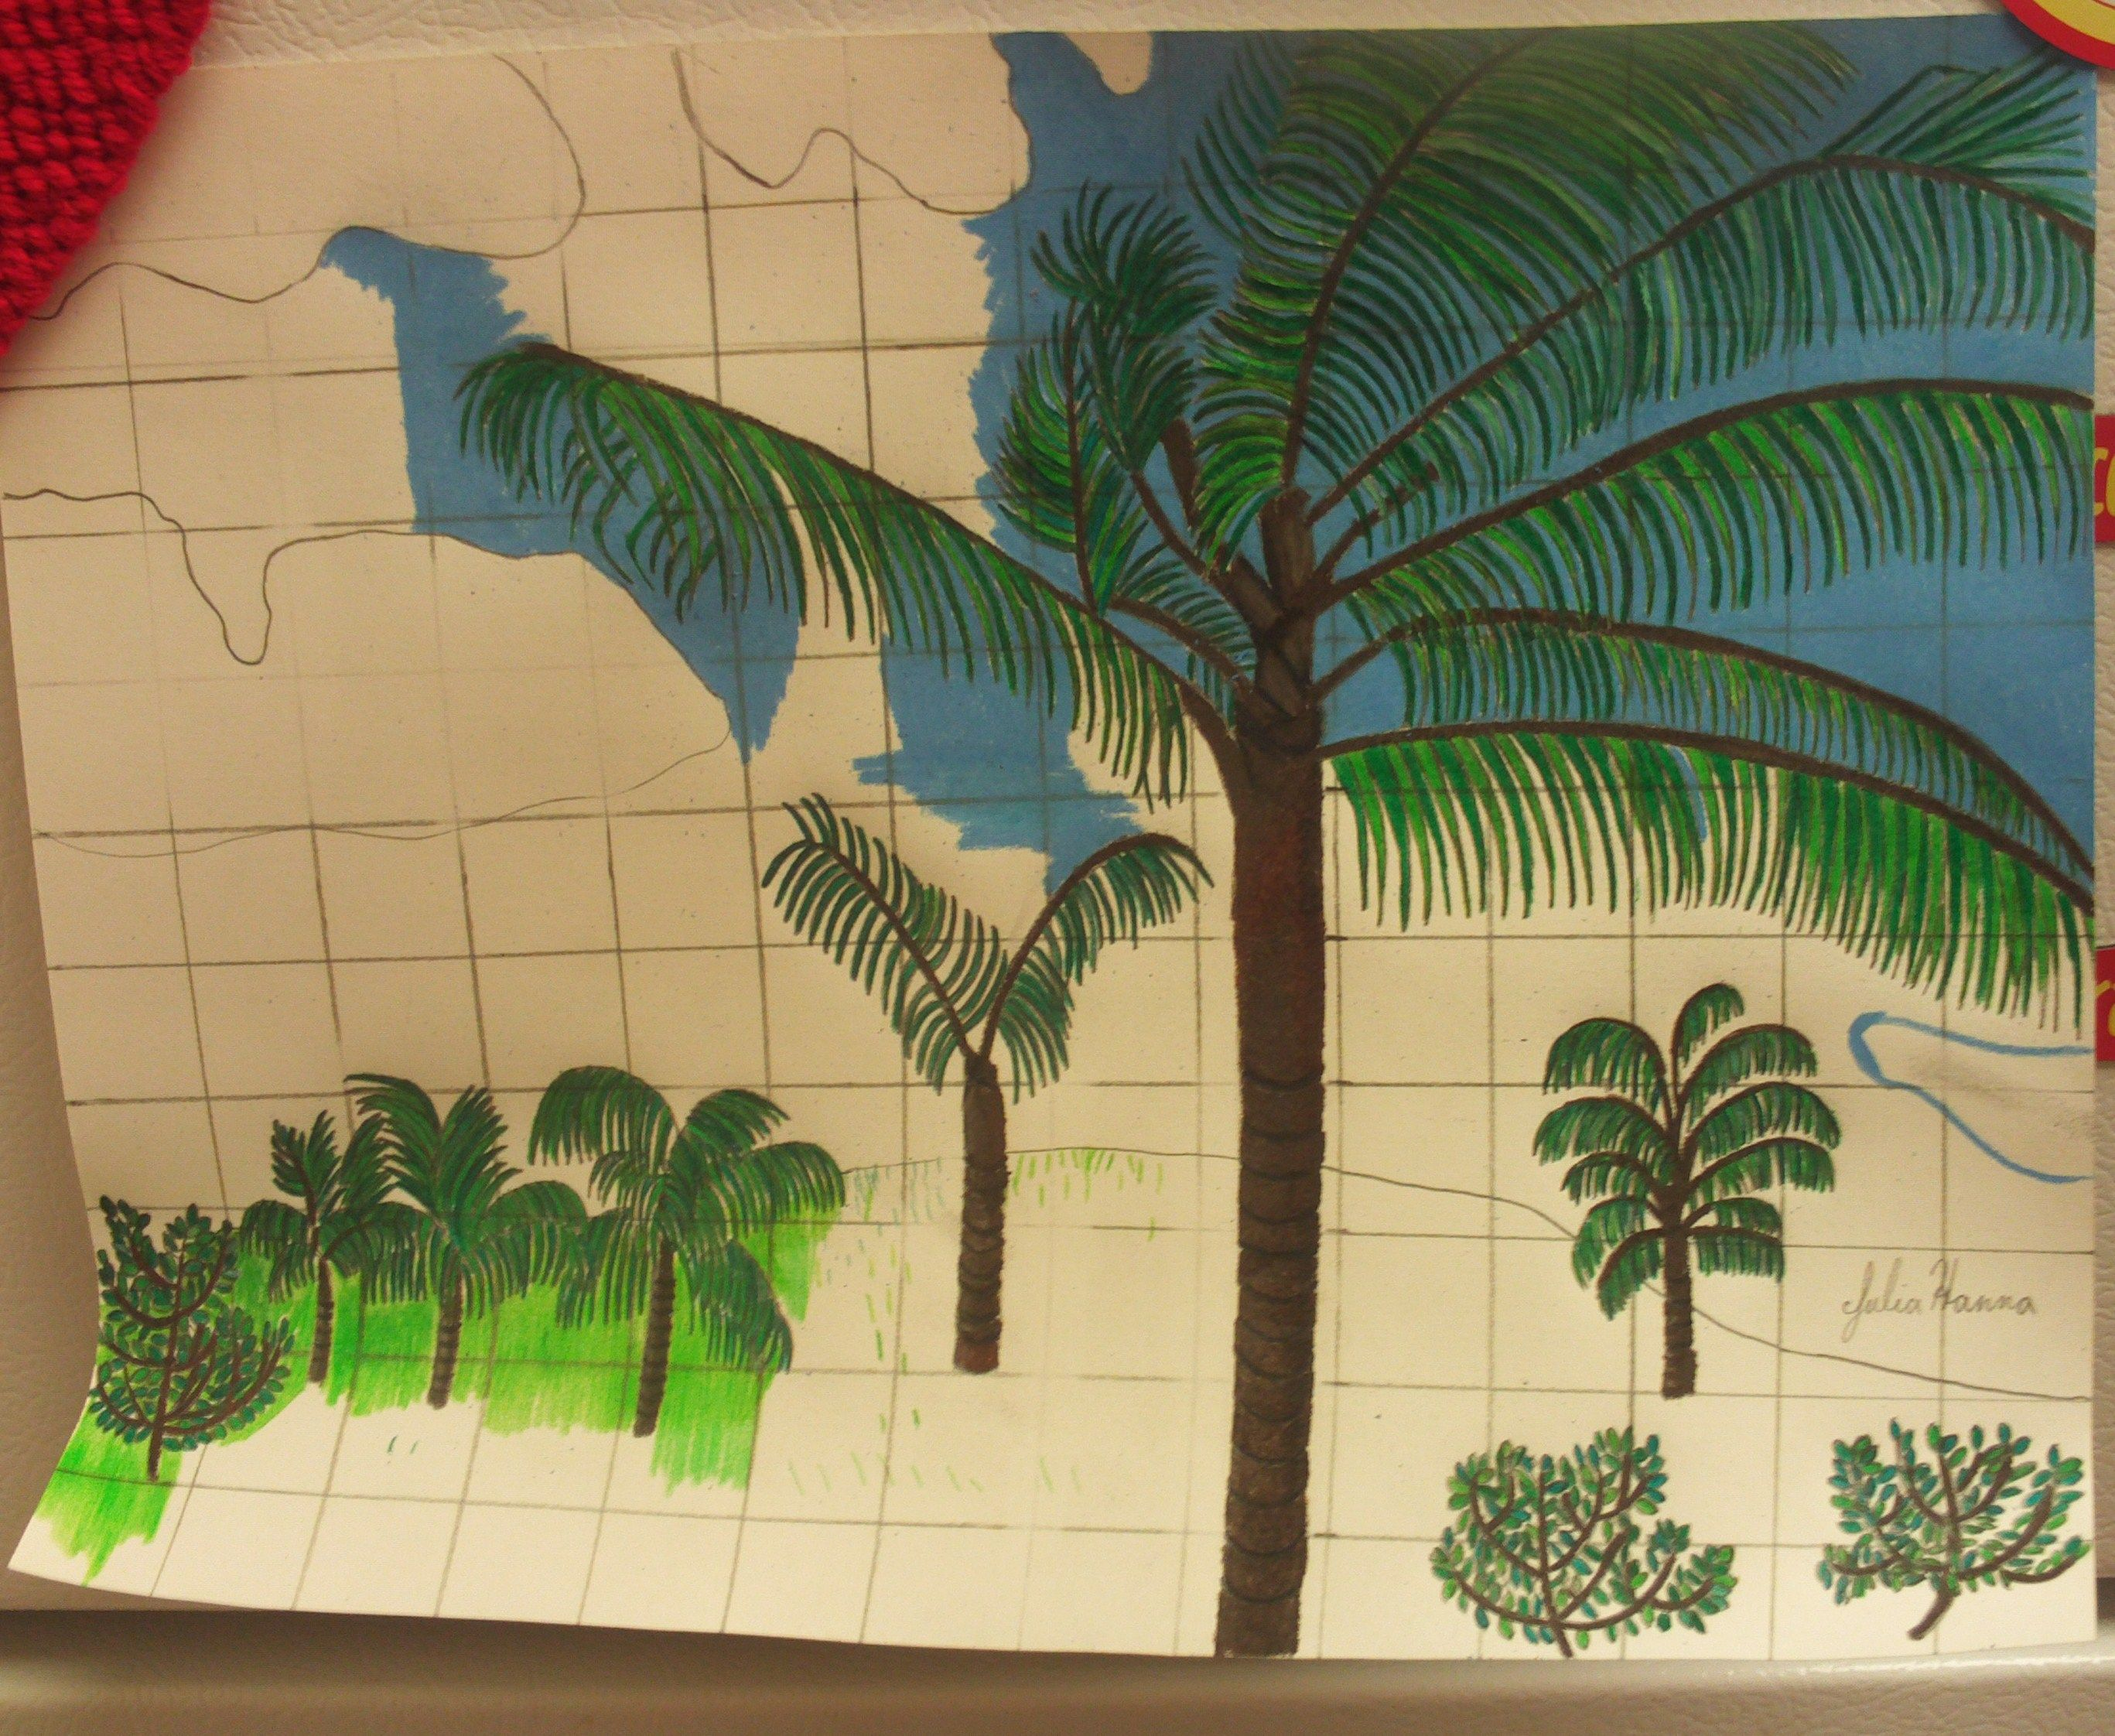 How To Draw A Hawaiian Palm Tree Scene On Graph Paper | Graph paper ...